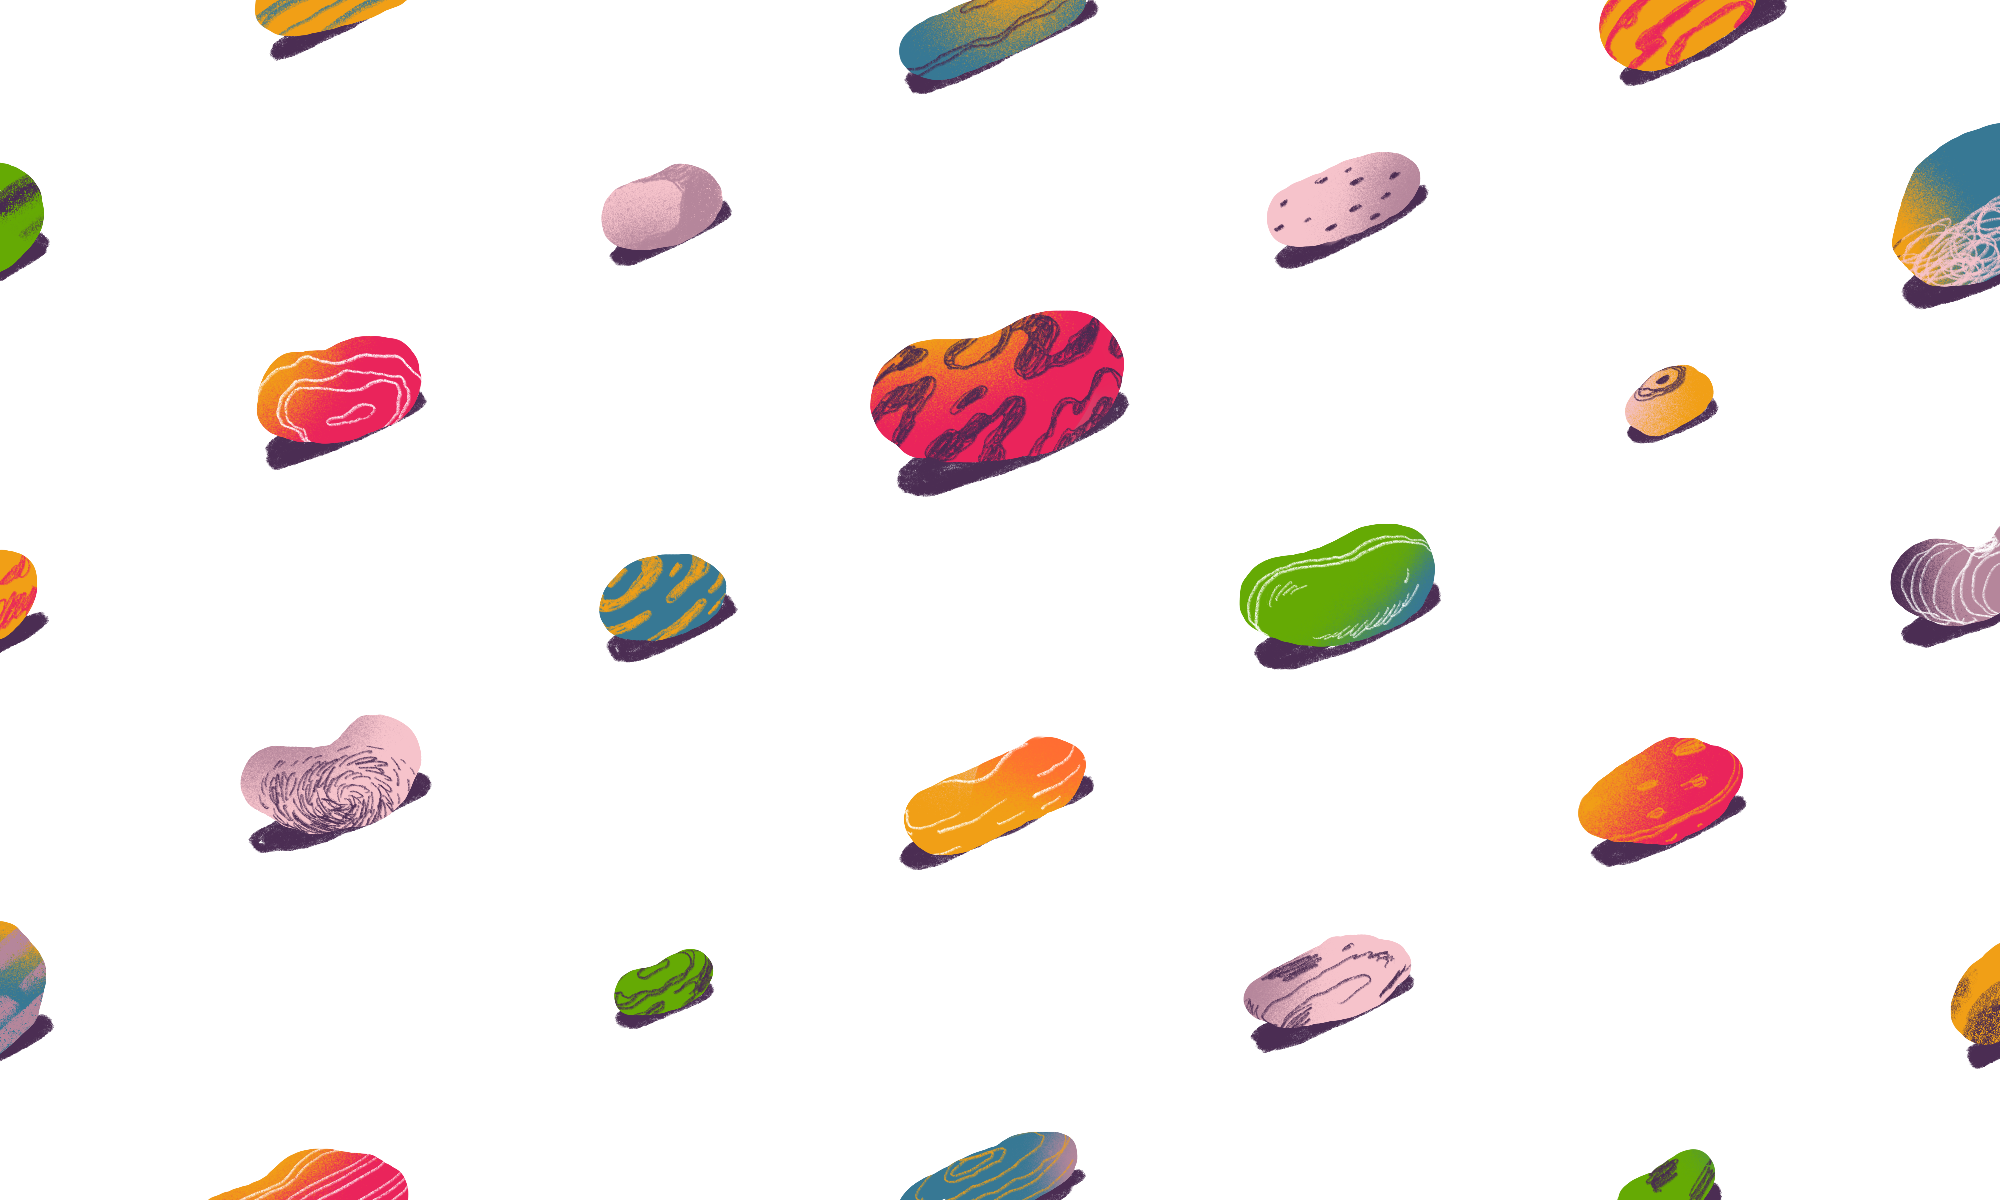 Beans of various shapes and colors.